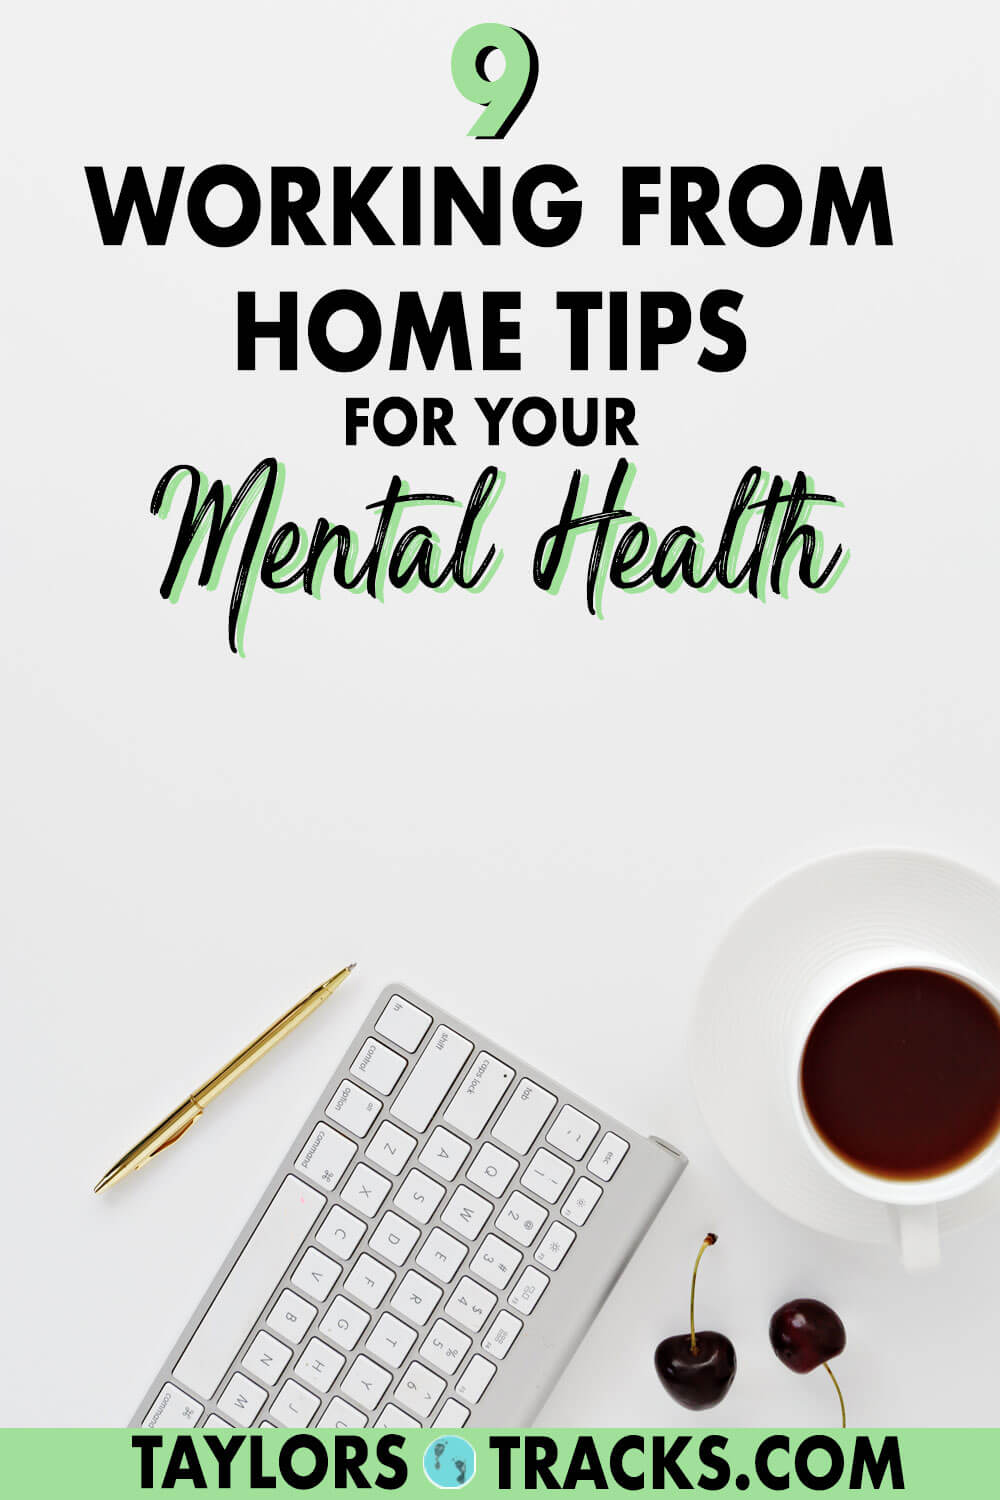 Working from home can be fabulous, but it can also be a big change that can be stressful, especially for your mental health. This article will teach you simple and effective work from home tips to keep you productive, efficient, sane and also happy.